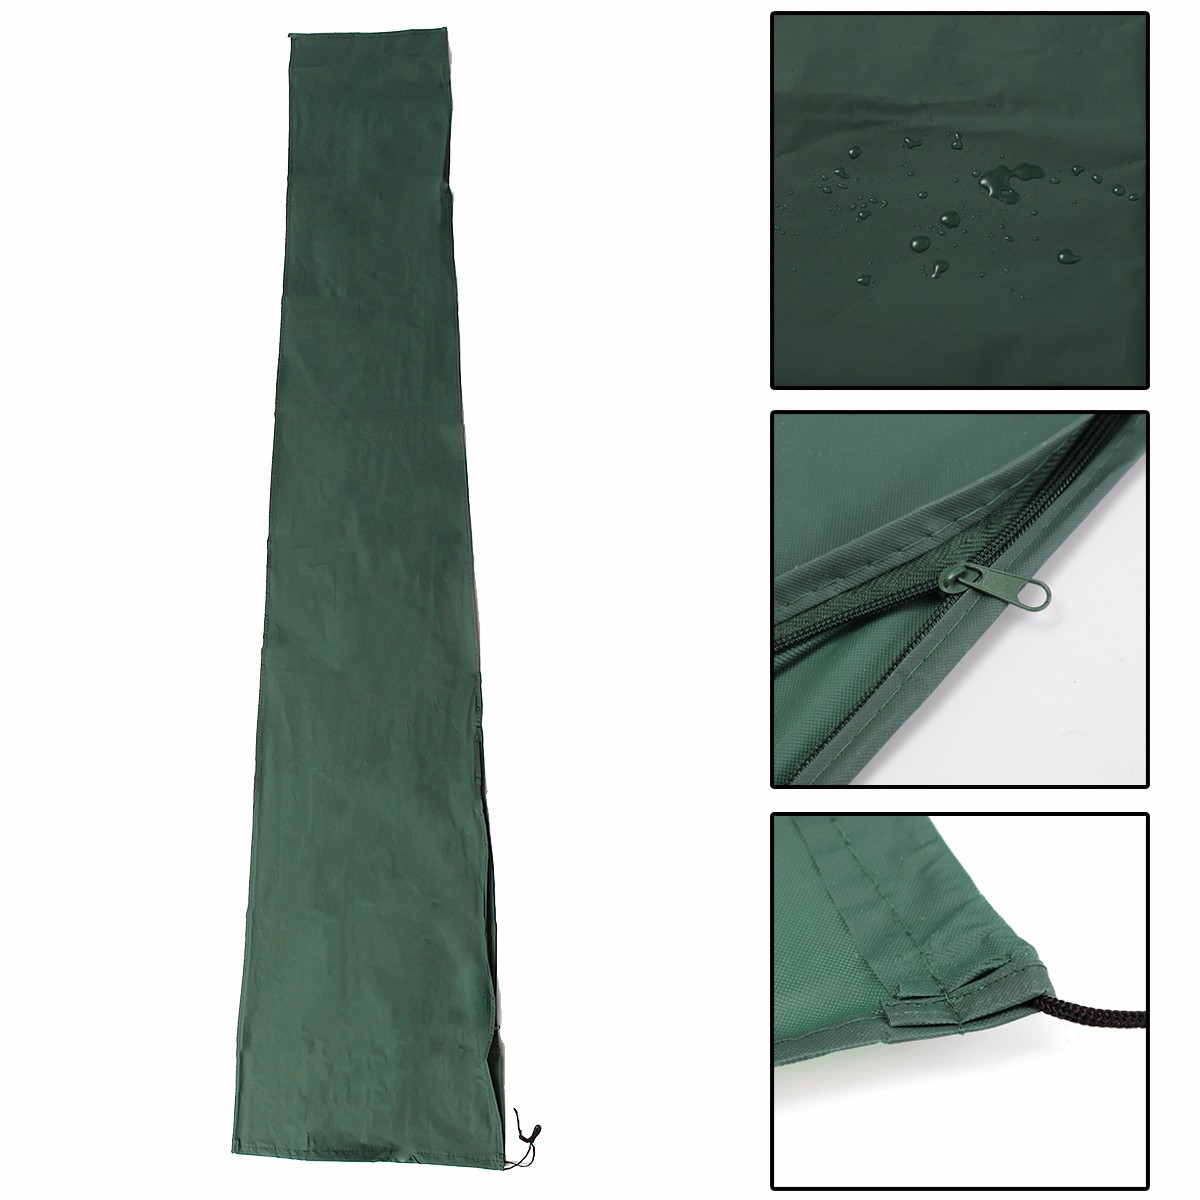 New Polyethylene Garden Patio Parasol Umbrella Cover Bag Green Fit 7ft Umbrella +Draw String Neck 190x96cm